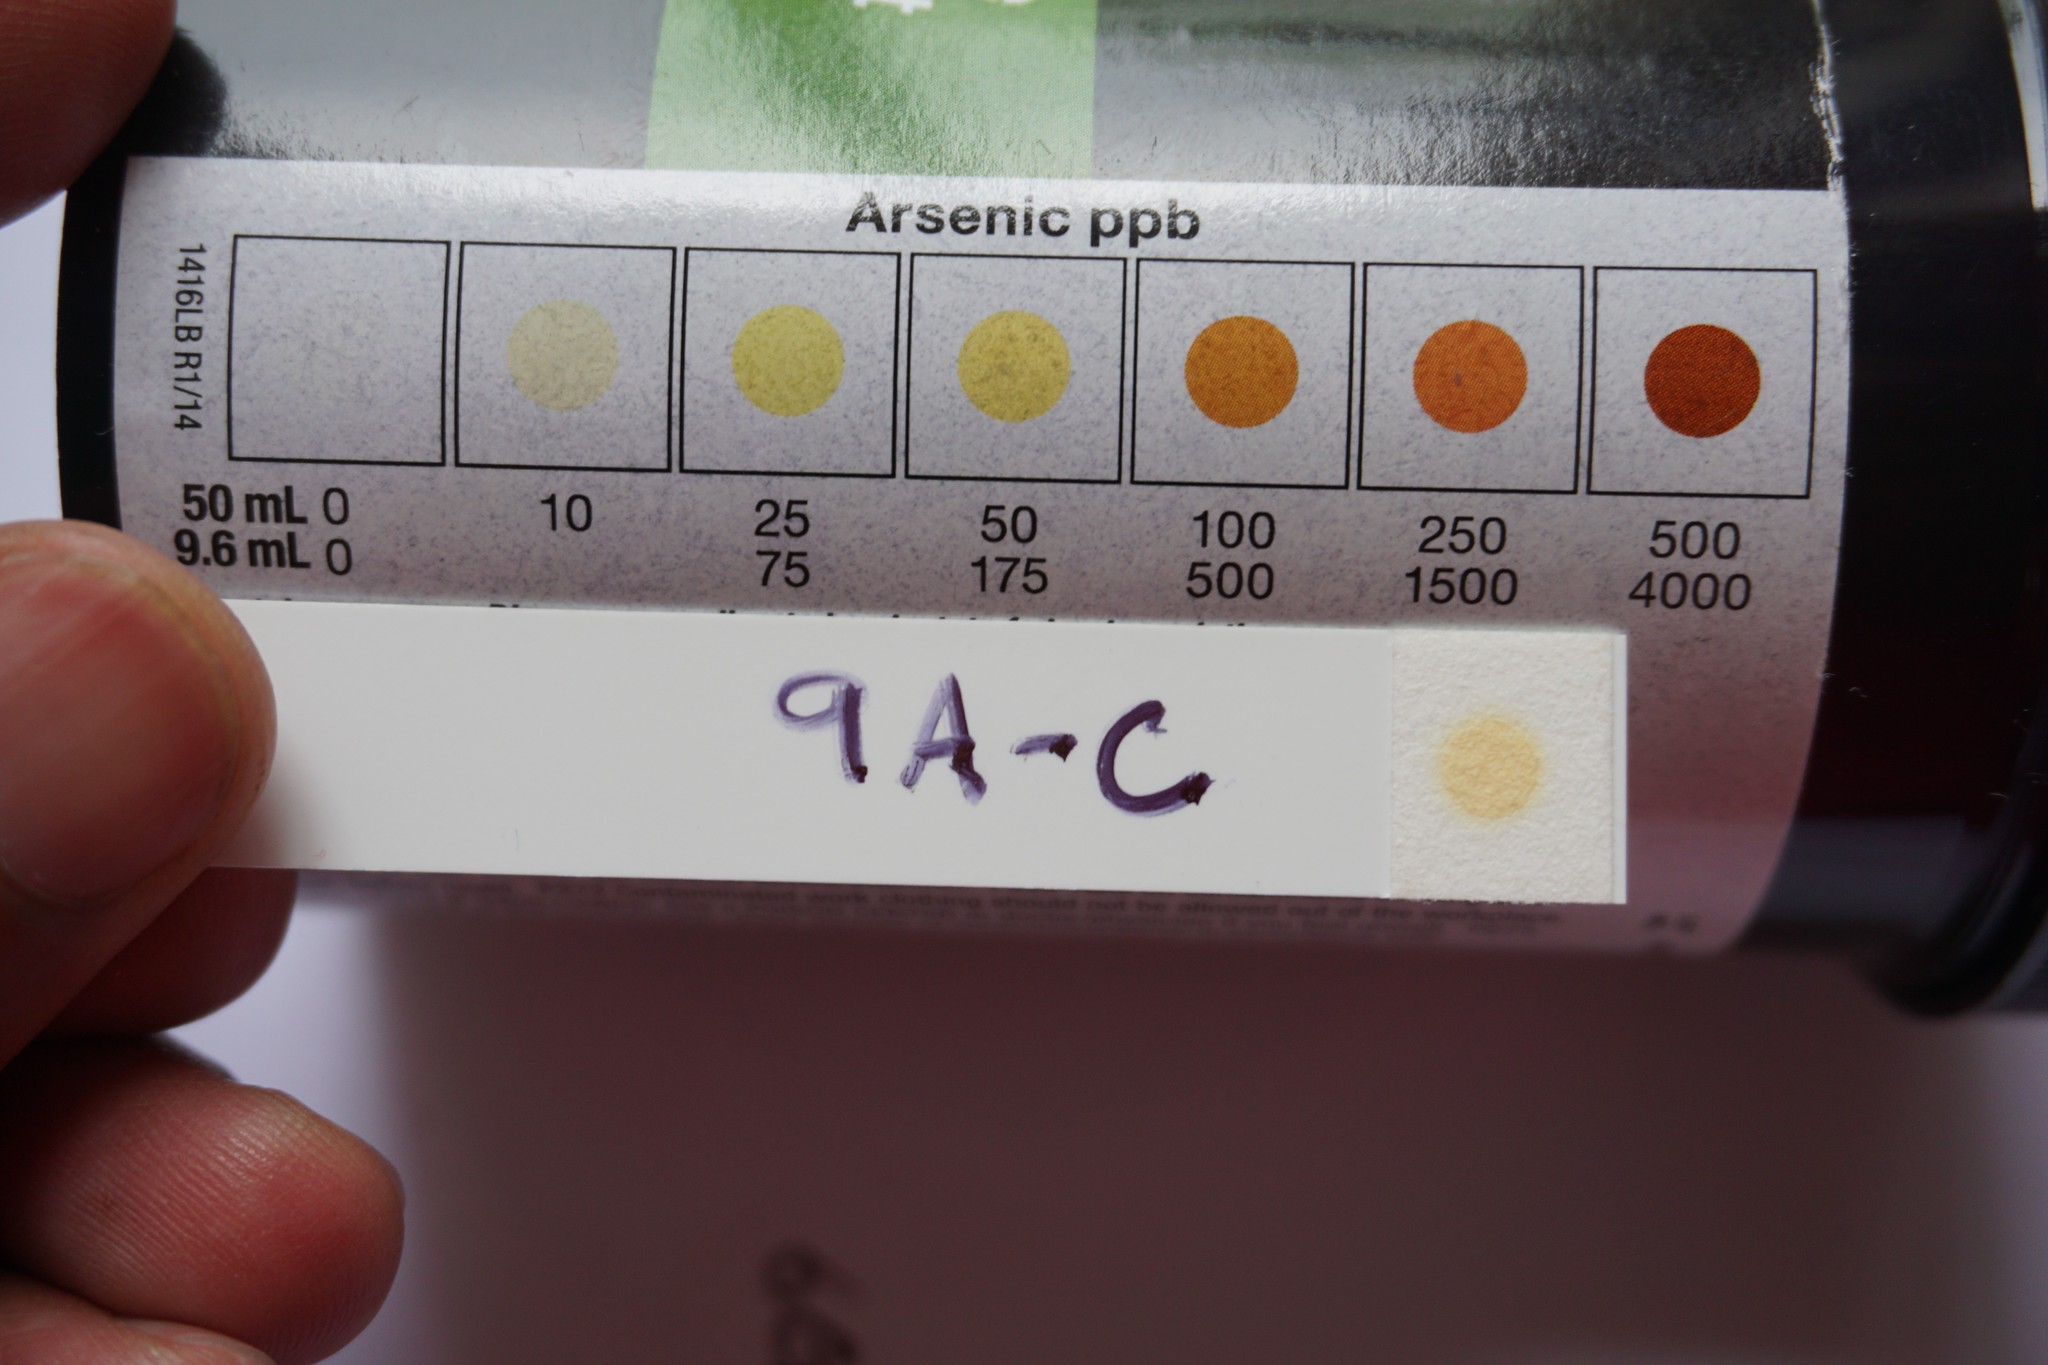 """A person holds a test strip labled """"9A-C"""" with a yellow dot at the end up to a chart showing light to dark colored dots indicating different levels of arsenic in water"""